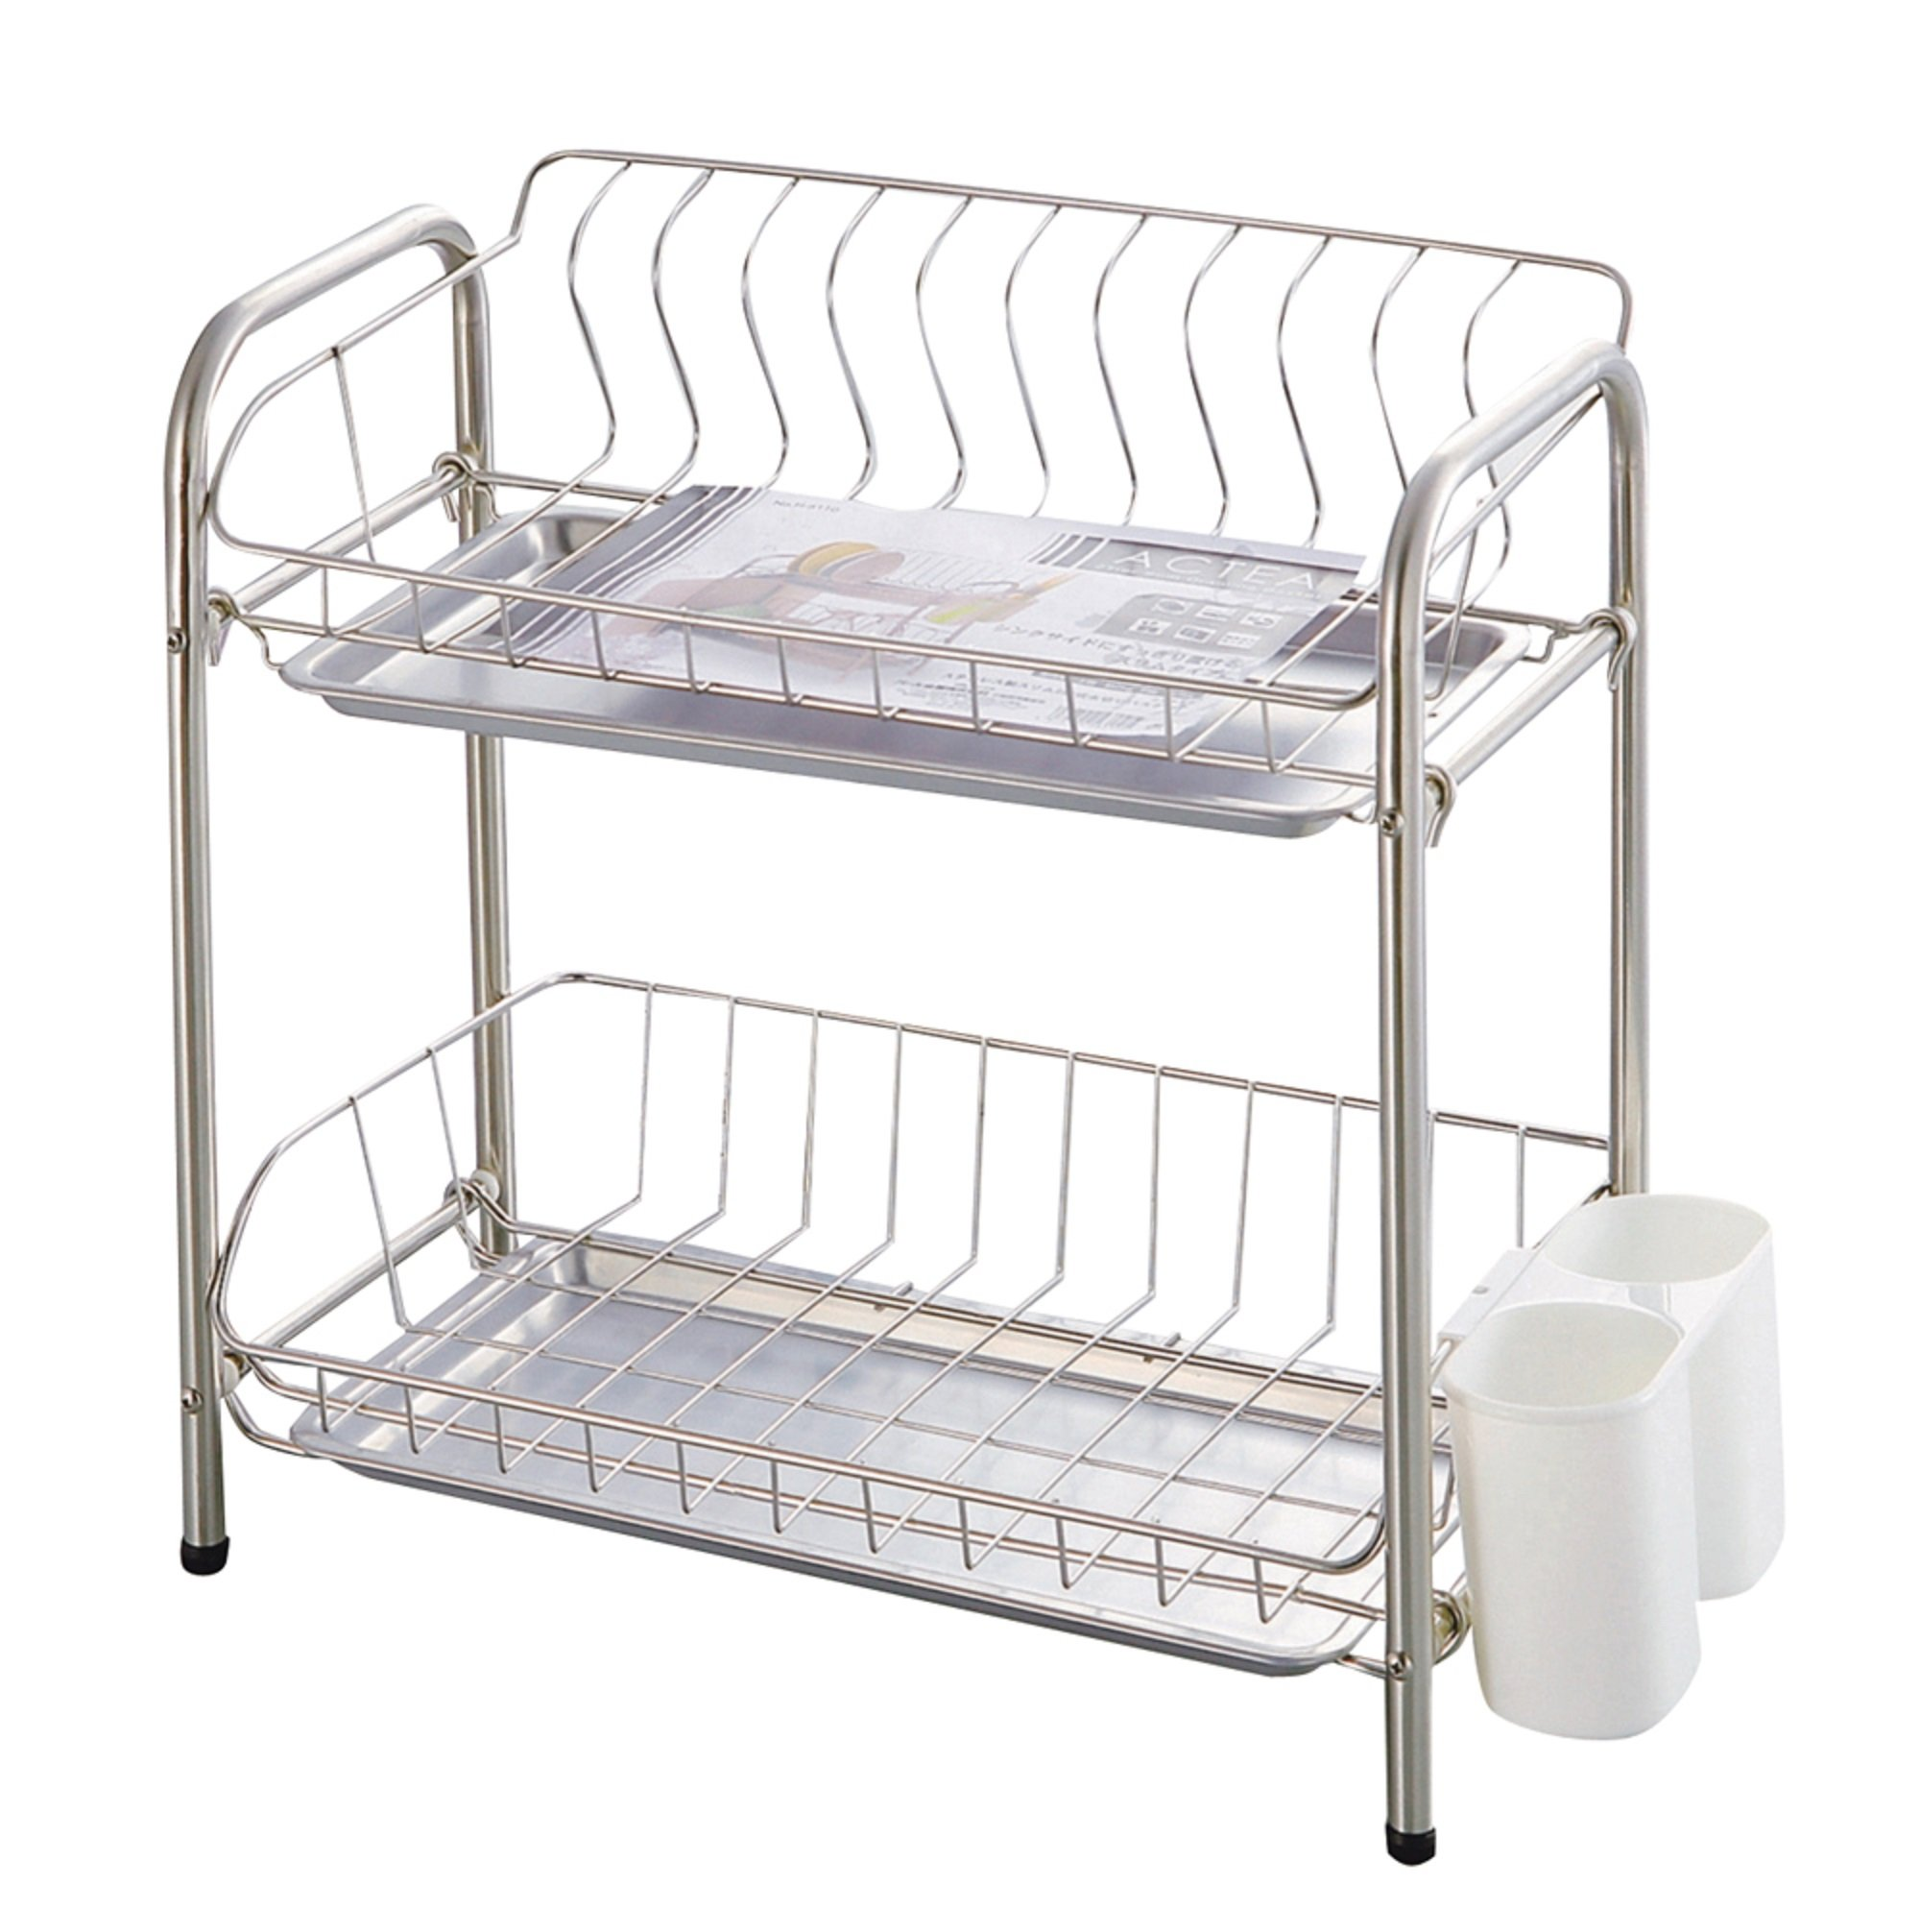 Parukinzoku Akutia stainless steel slim two-stage drainer basket H-6110